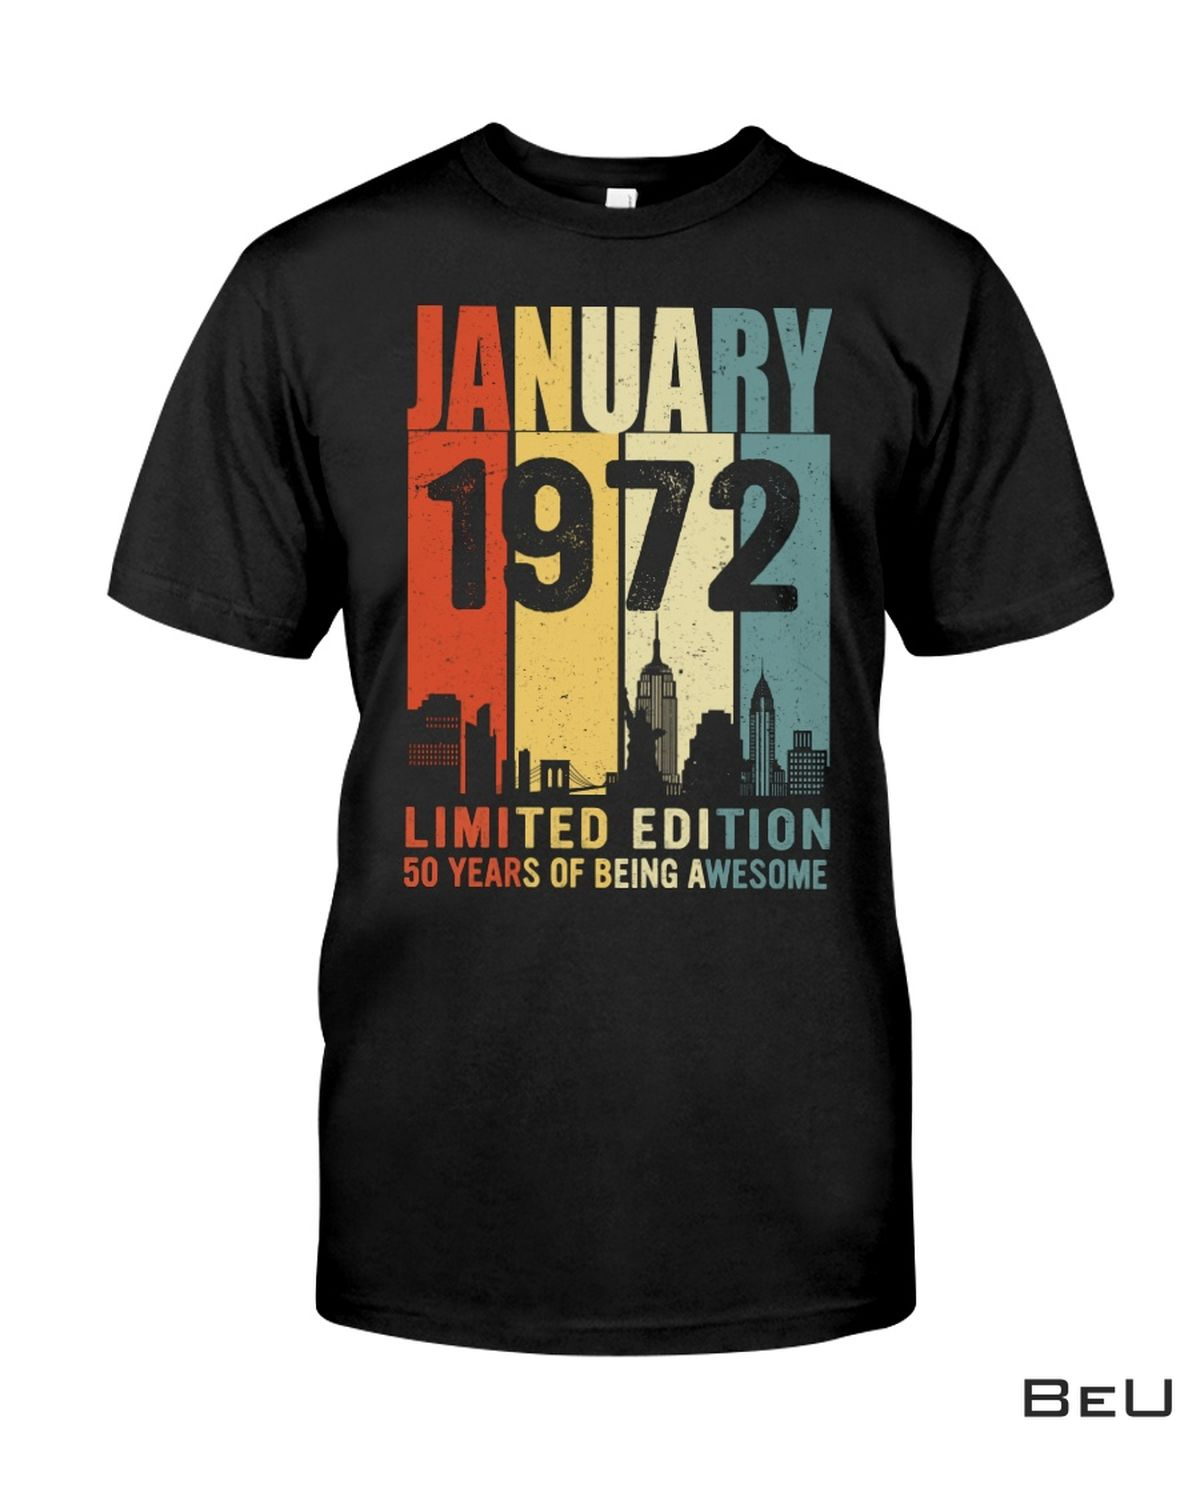 January 1972 Limited Edition 50 Years Of Being Awesome Shirt, hoodie